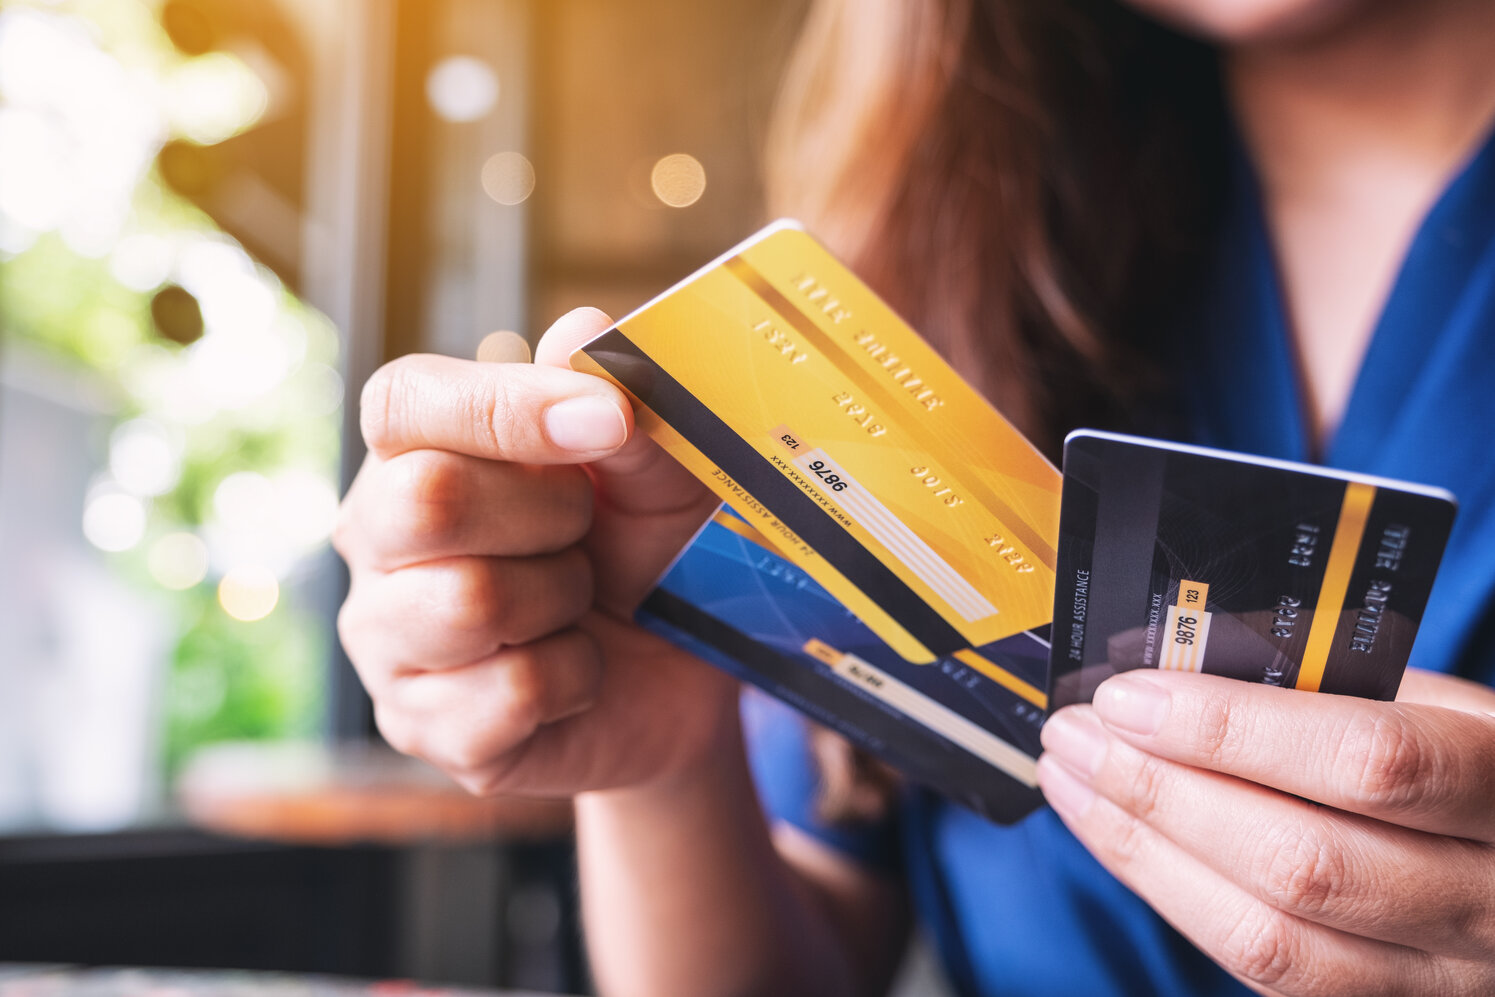 A radical change is coming to the way major credit cards work - BGR